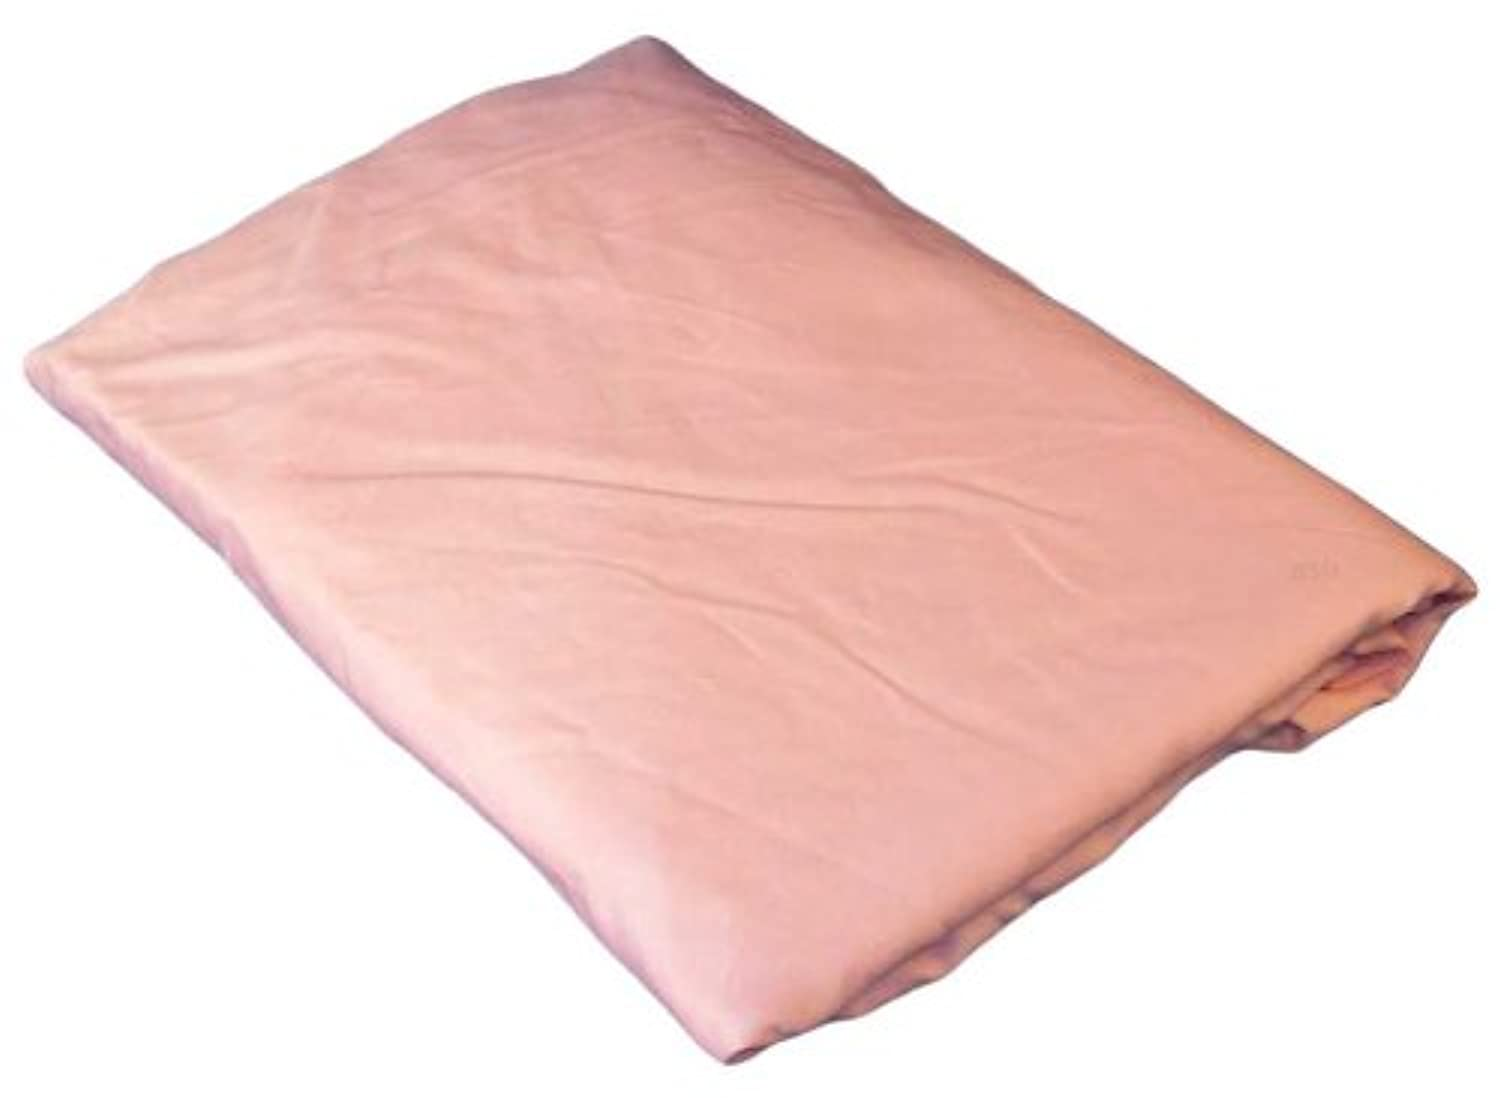 Brooke Fitted Sheet by Bananafish Pink, Size 28 in. x 52 in by Bananafish